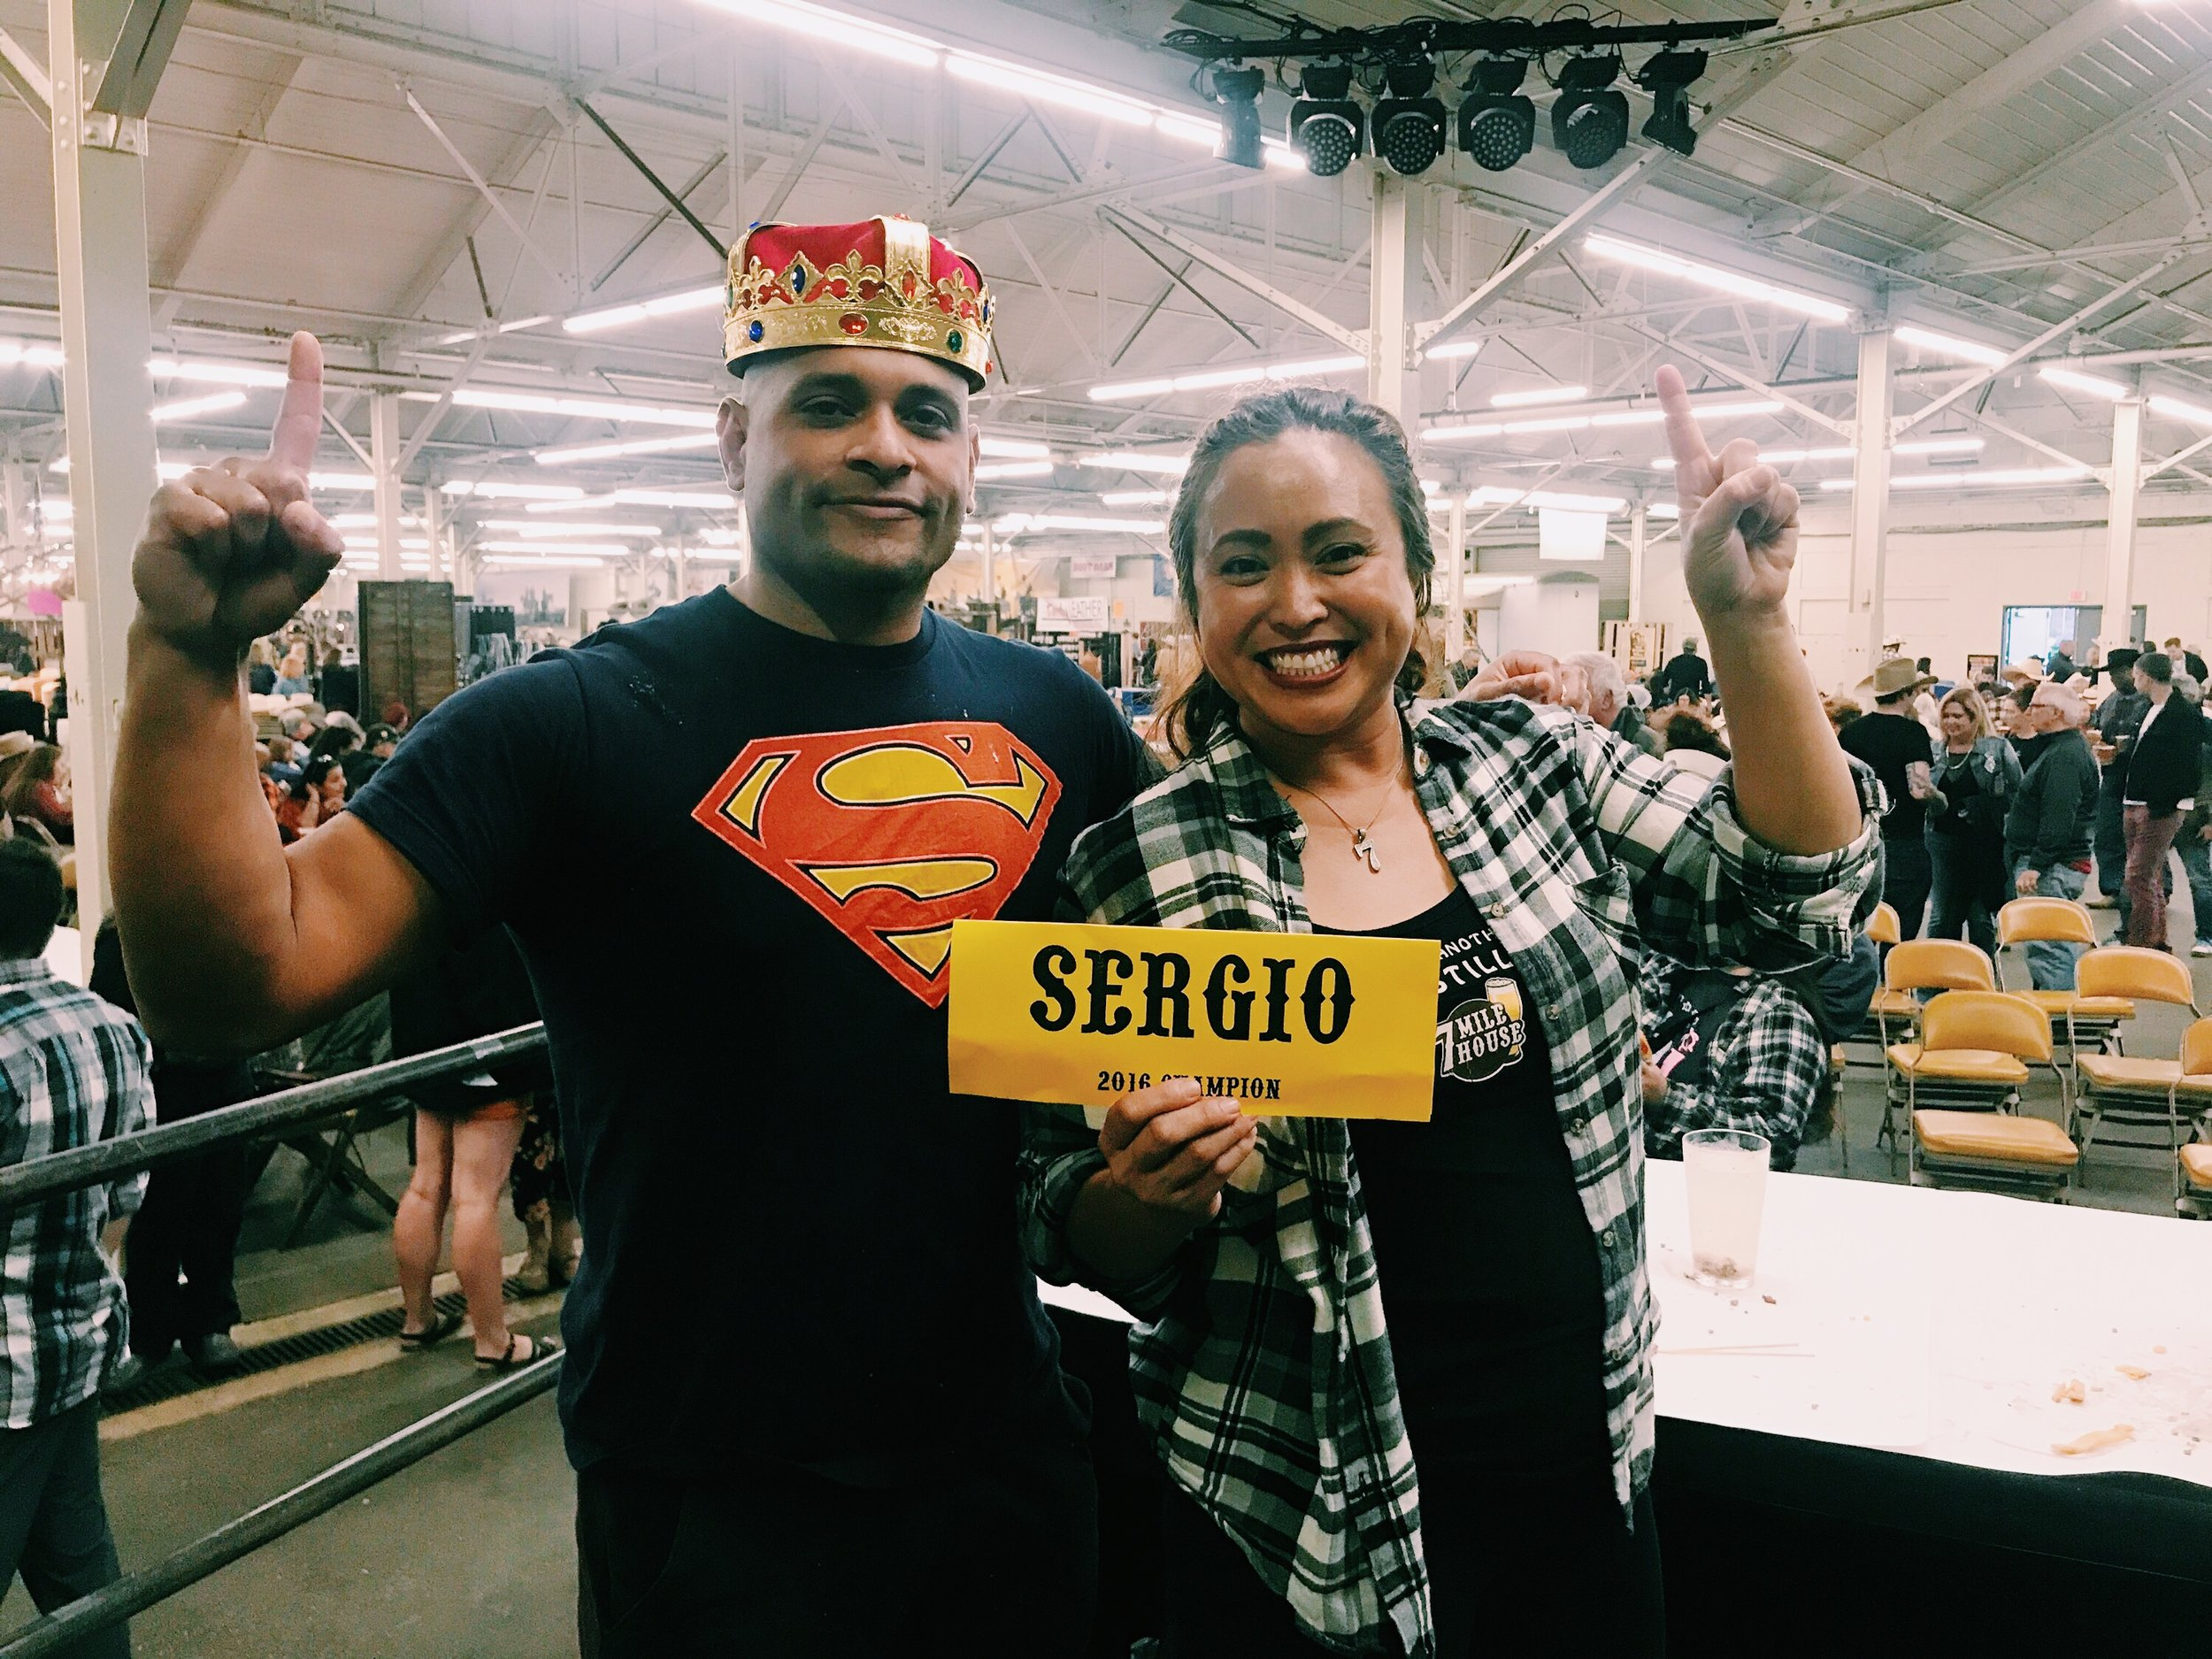 Sergio retakes the crown!